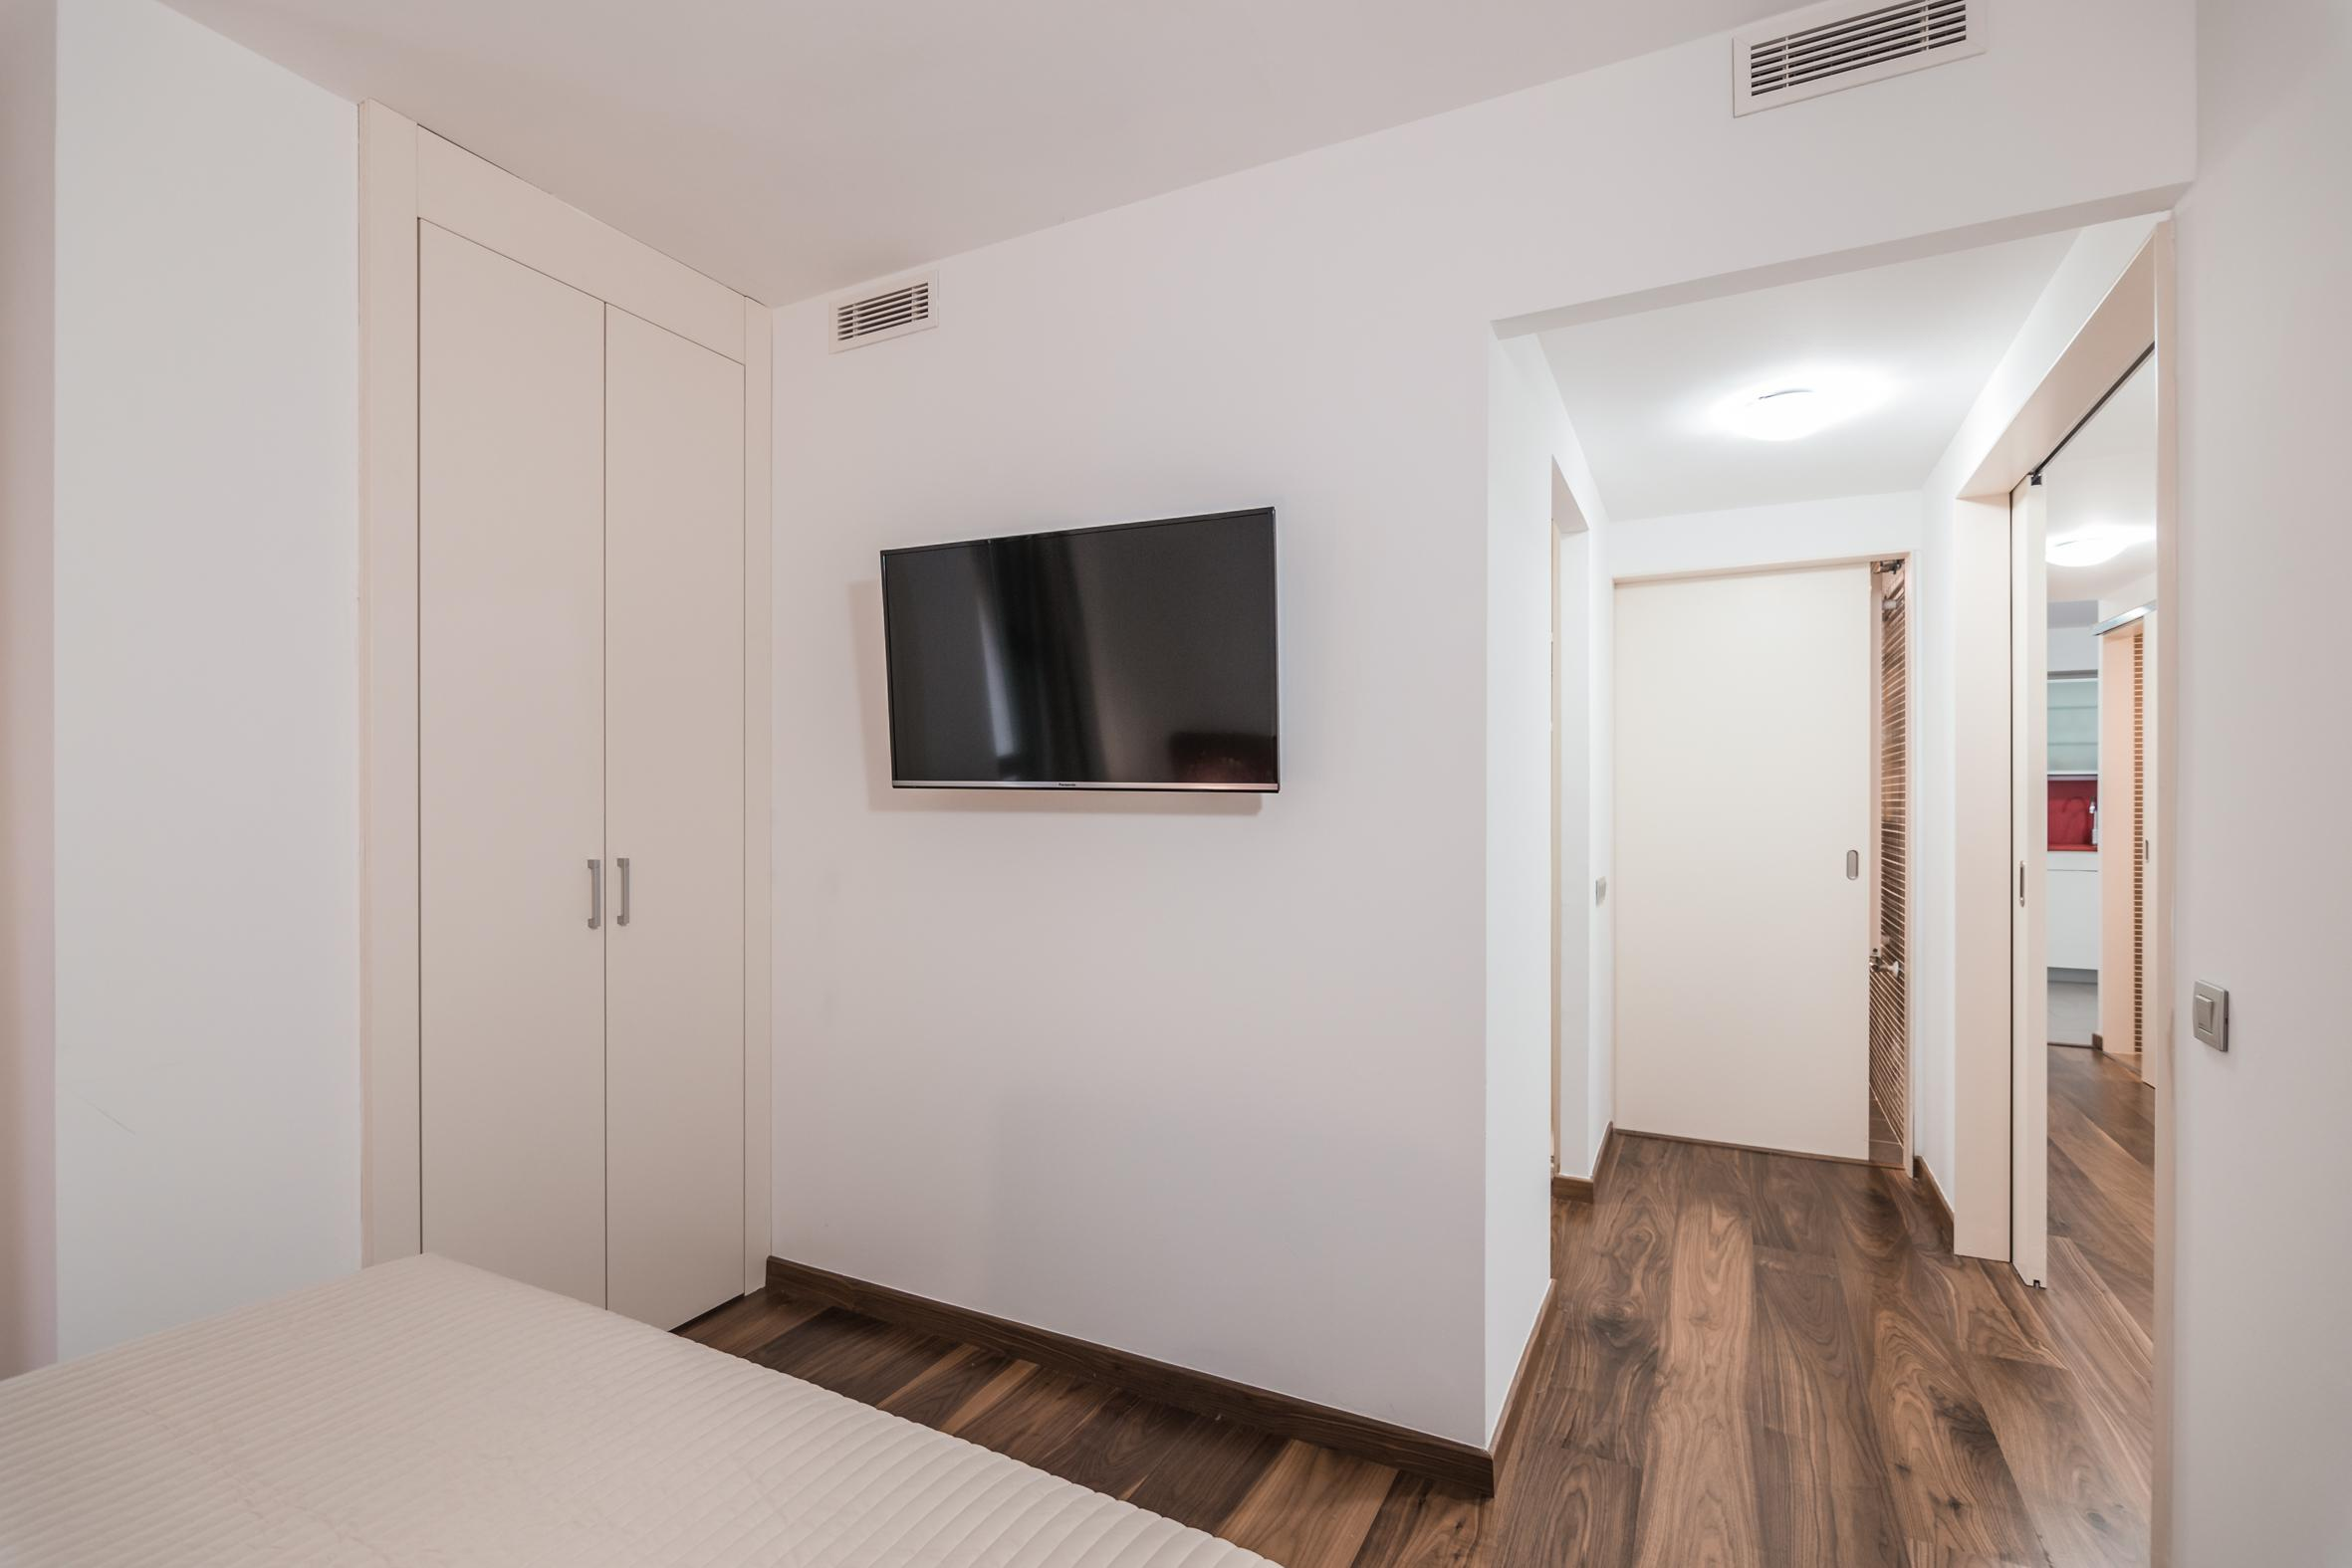 194056 Flat for sale in Ciutat Vella, Barri Gótic 12